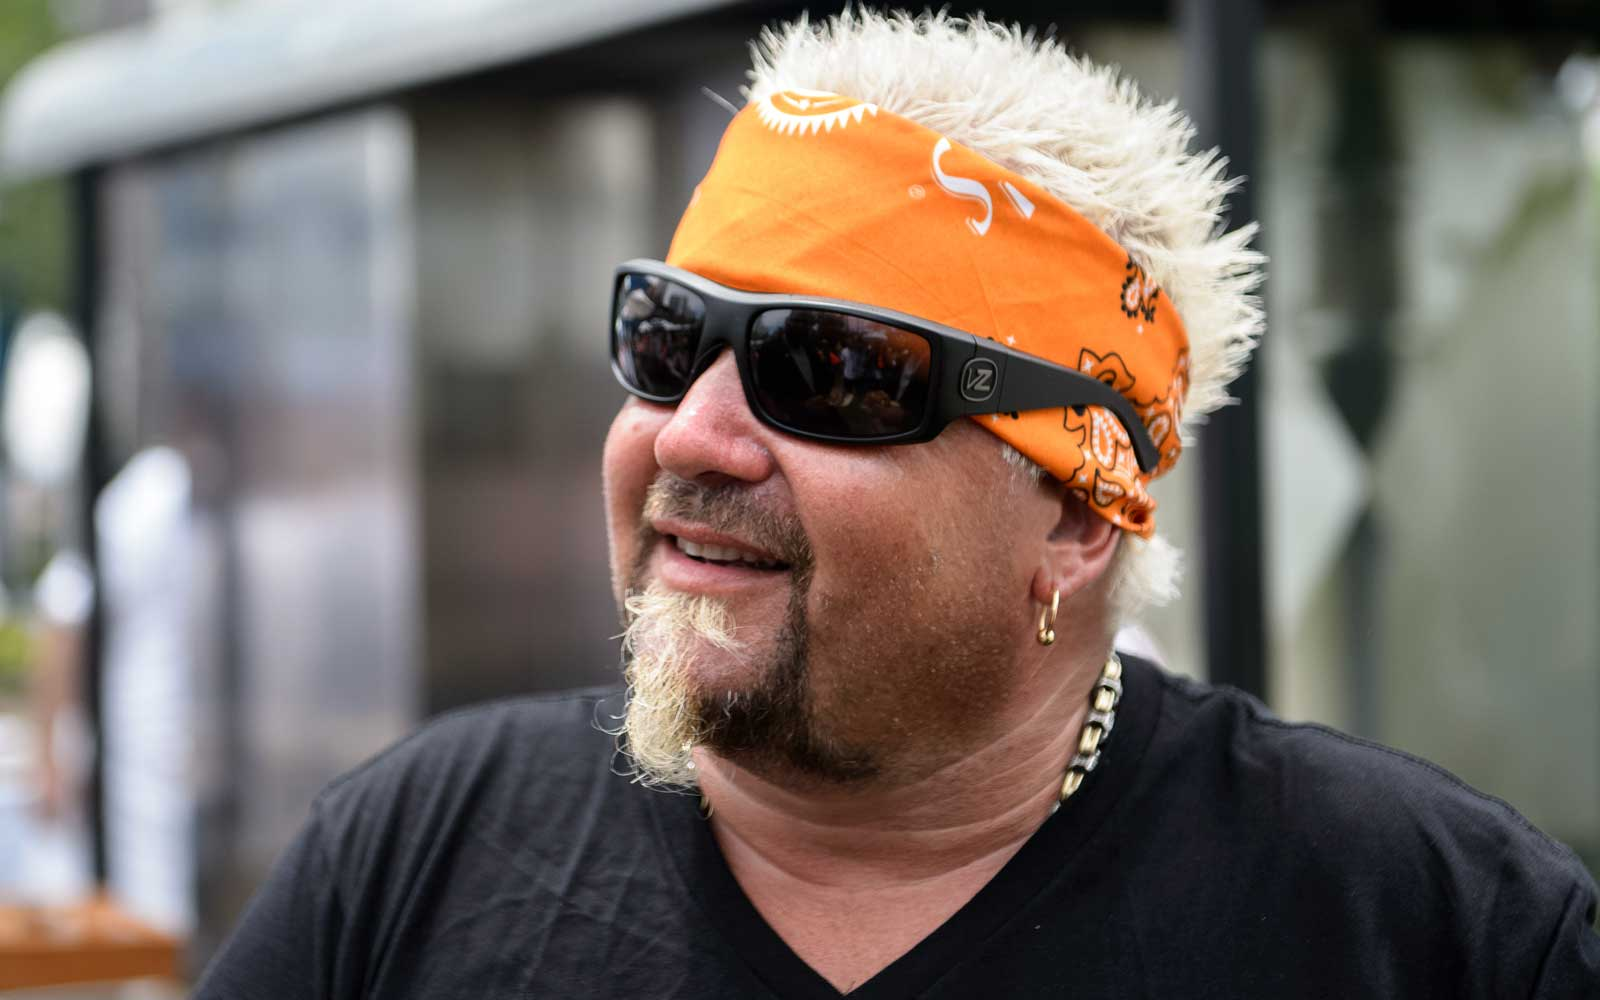 Guy Fieri's New Fried Chicken Restaurant Brings Flavortown to Disney World